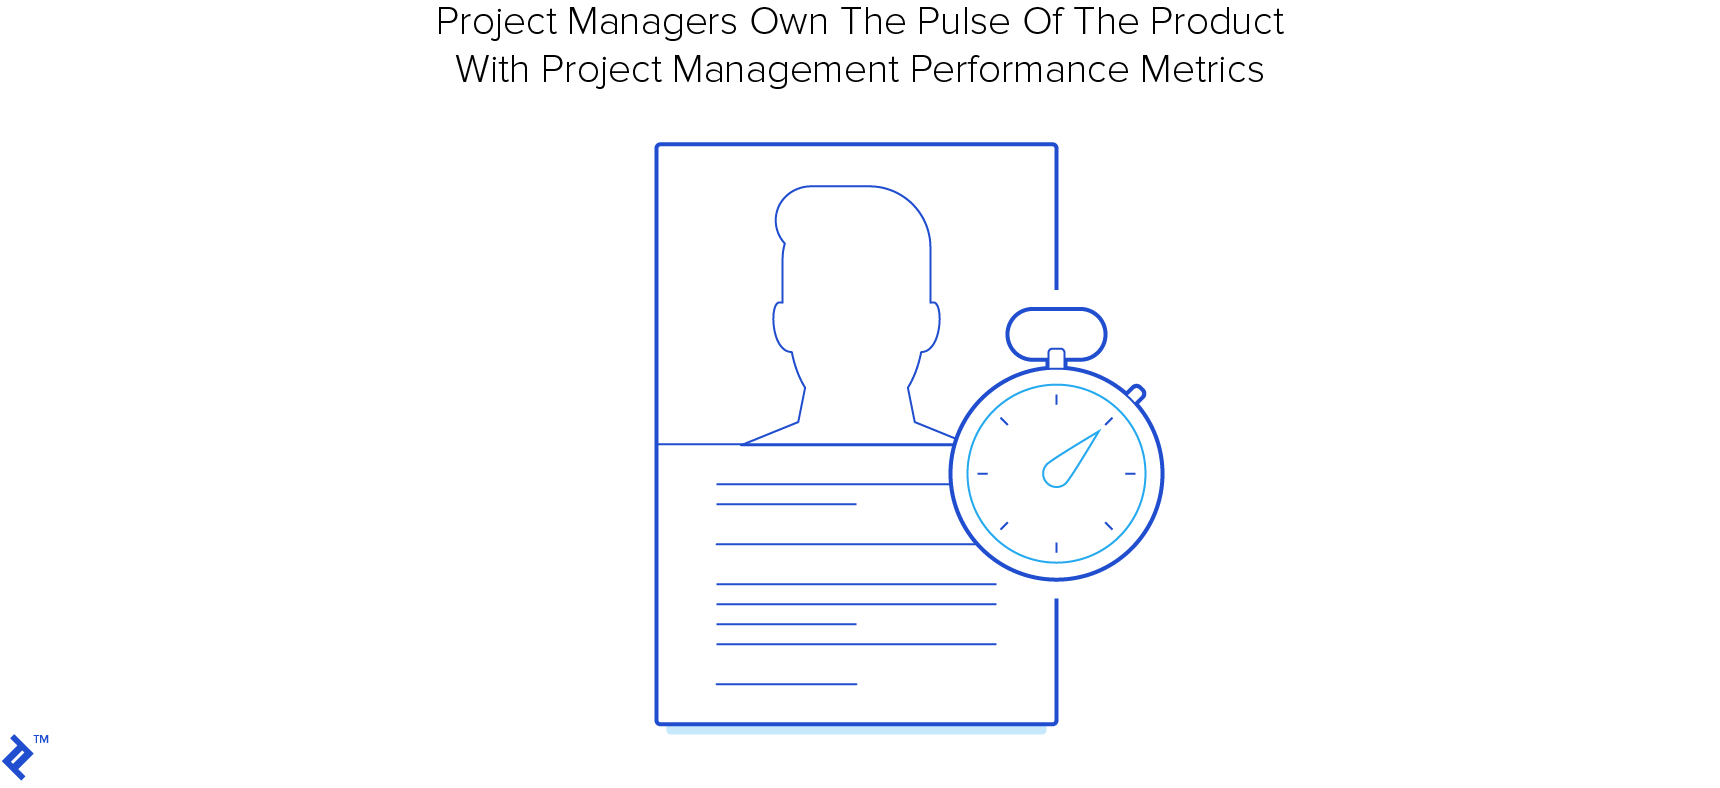 Project managers own the pulse of the product with project management performance metrics.